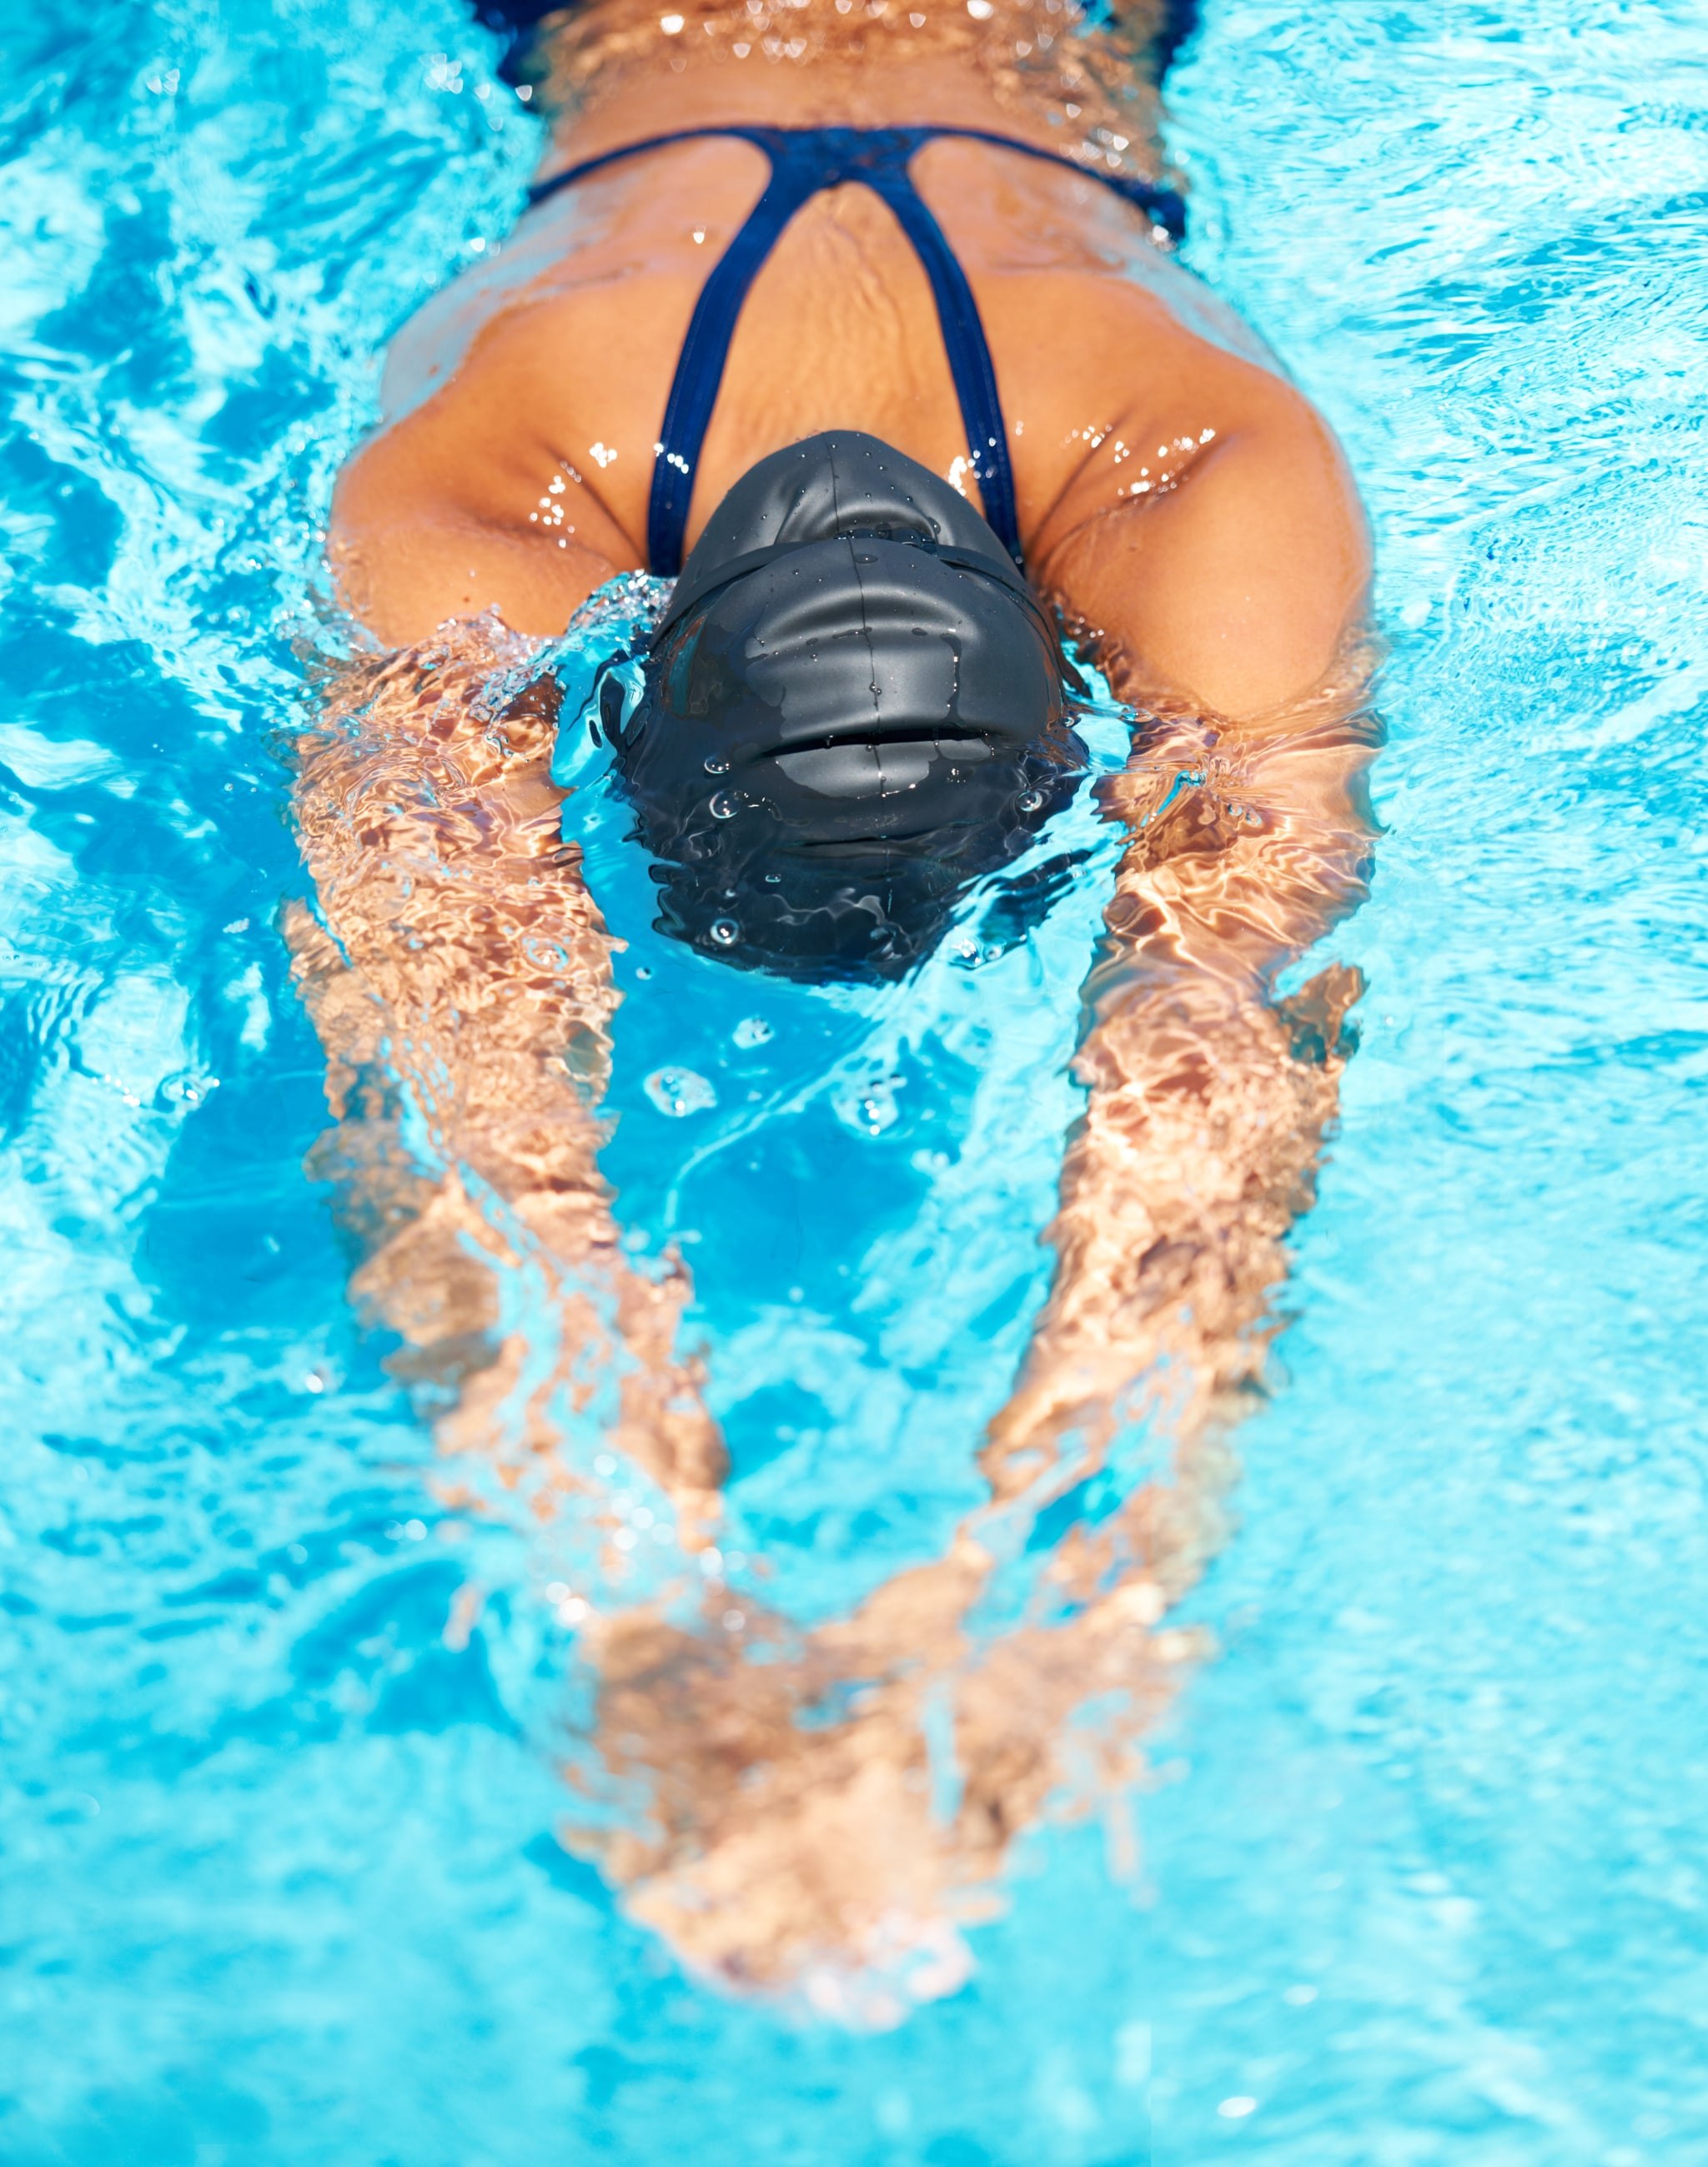 Shot of a young female swimmer gliding through the water